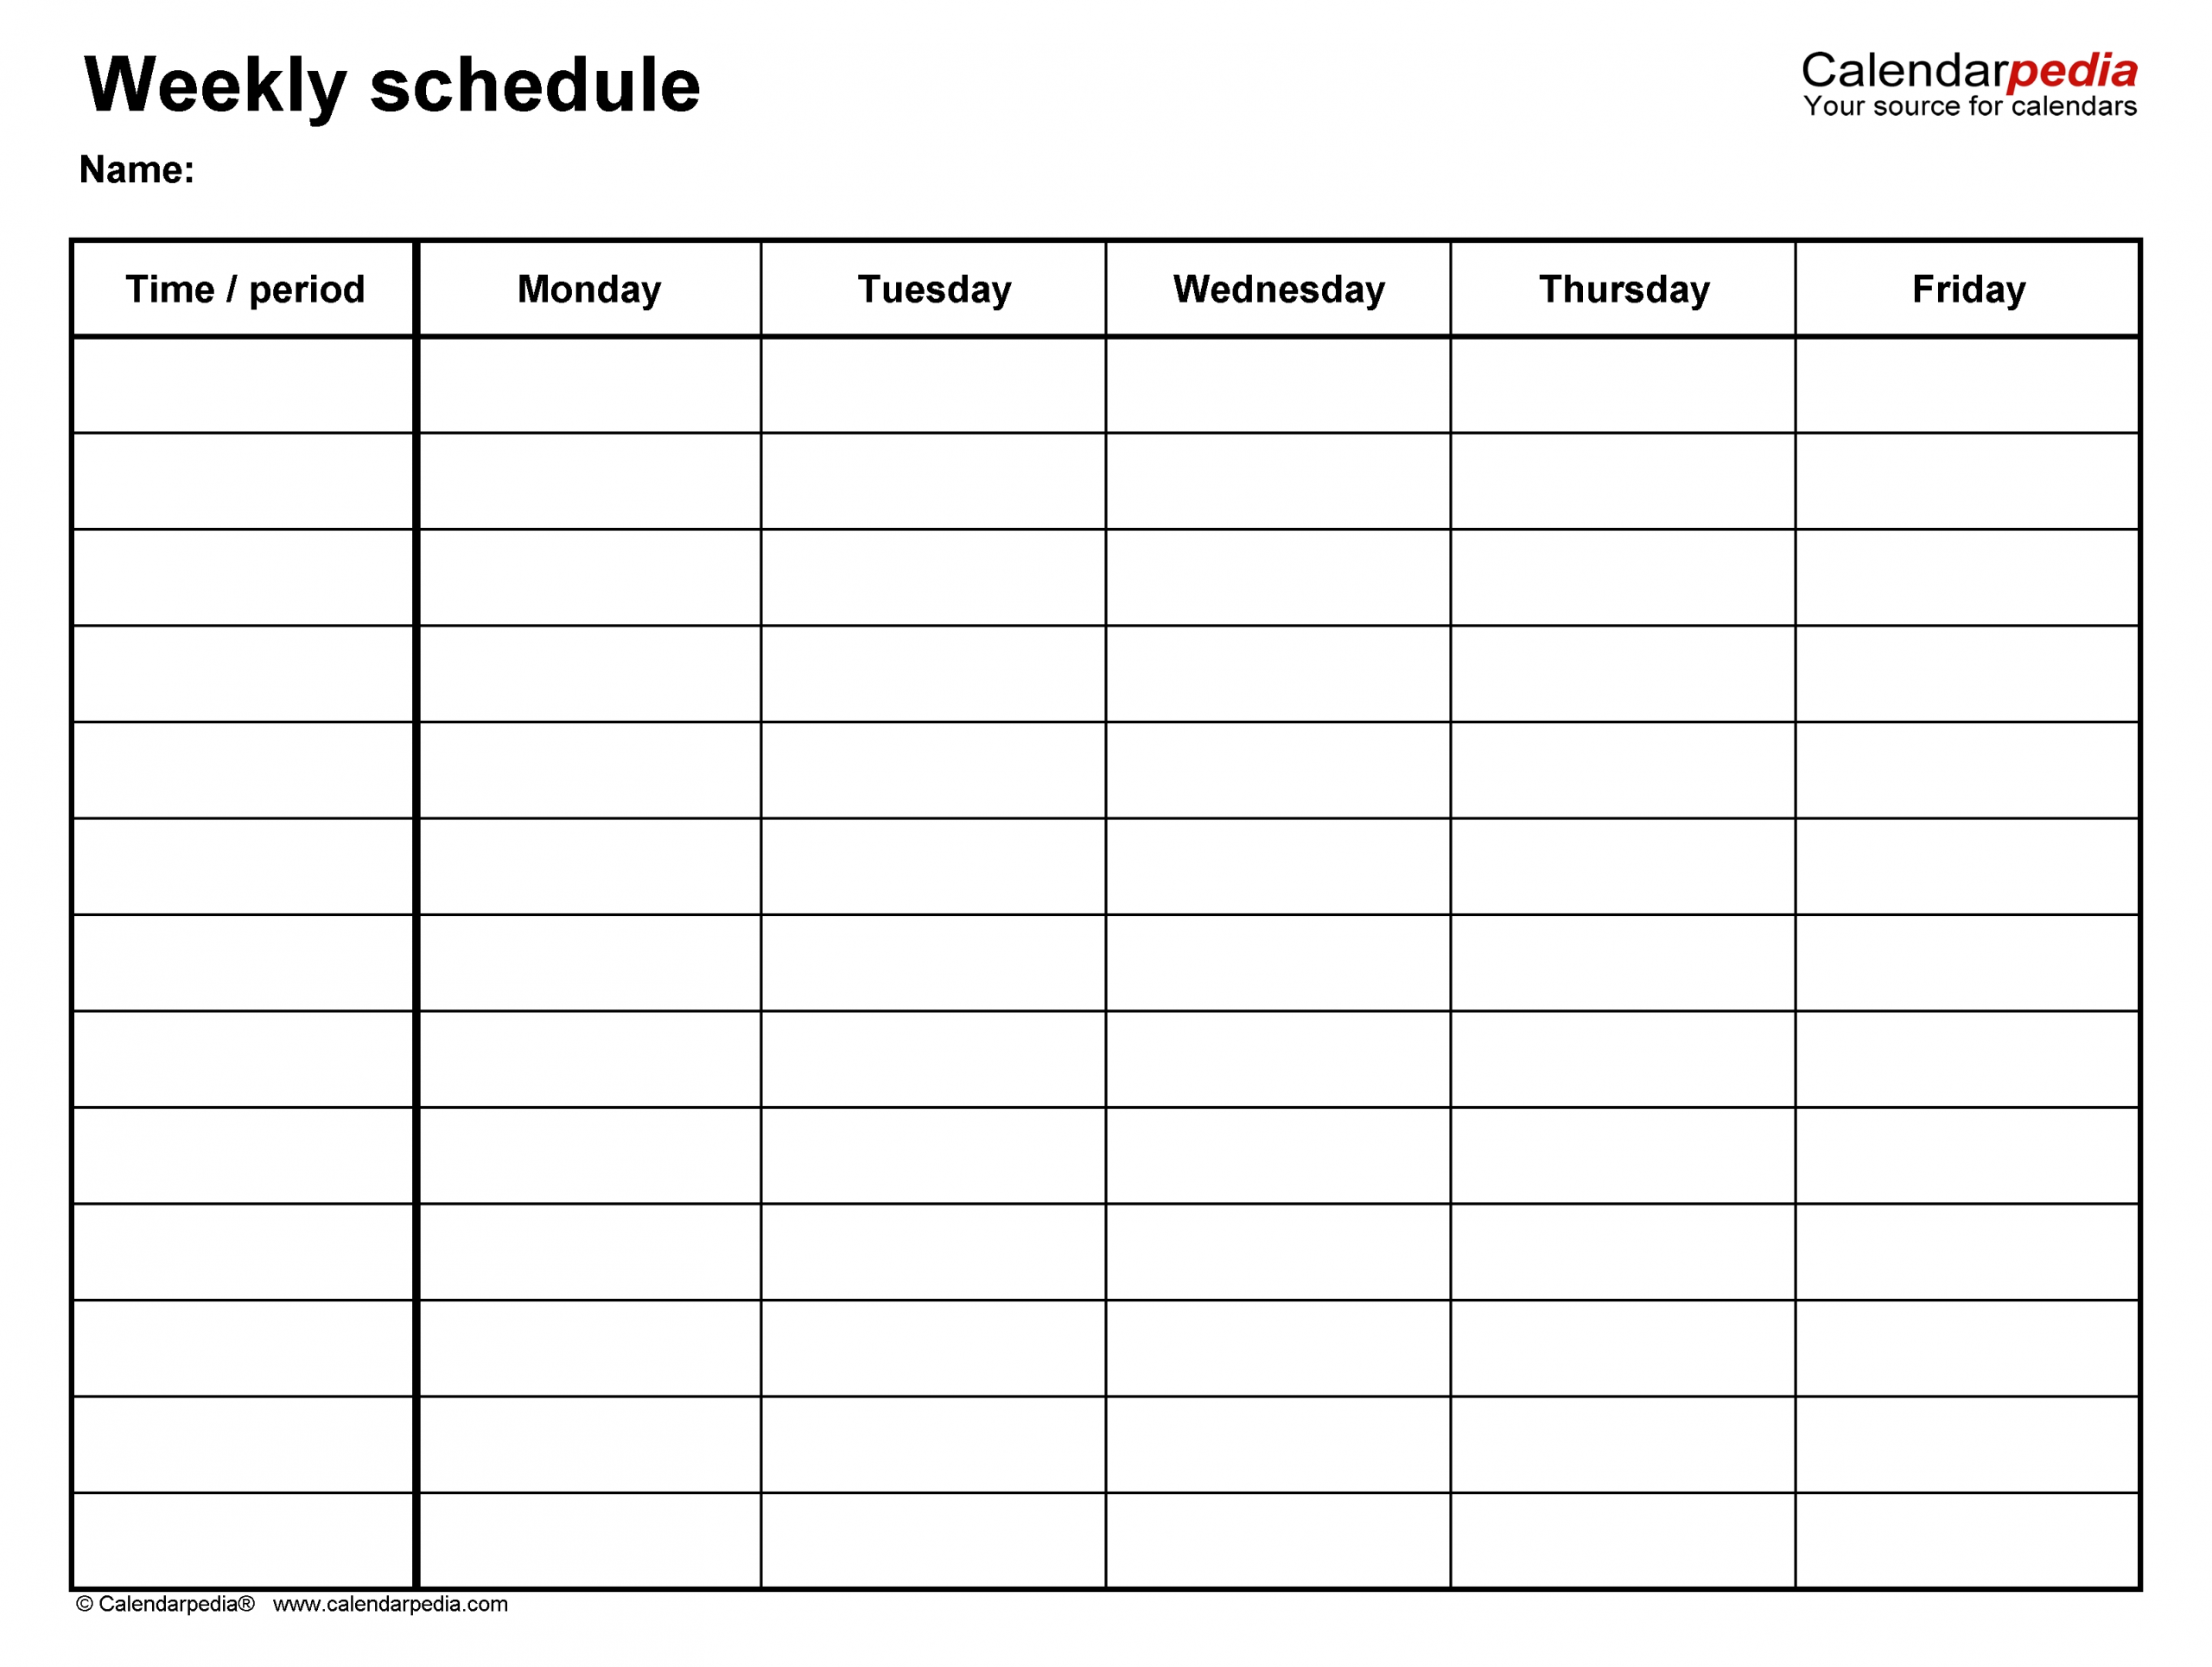 Get Weekly Schedule Time Schedule